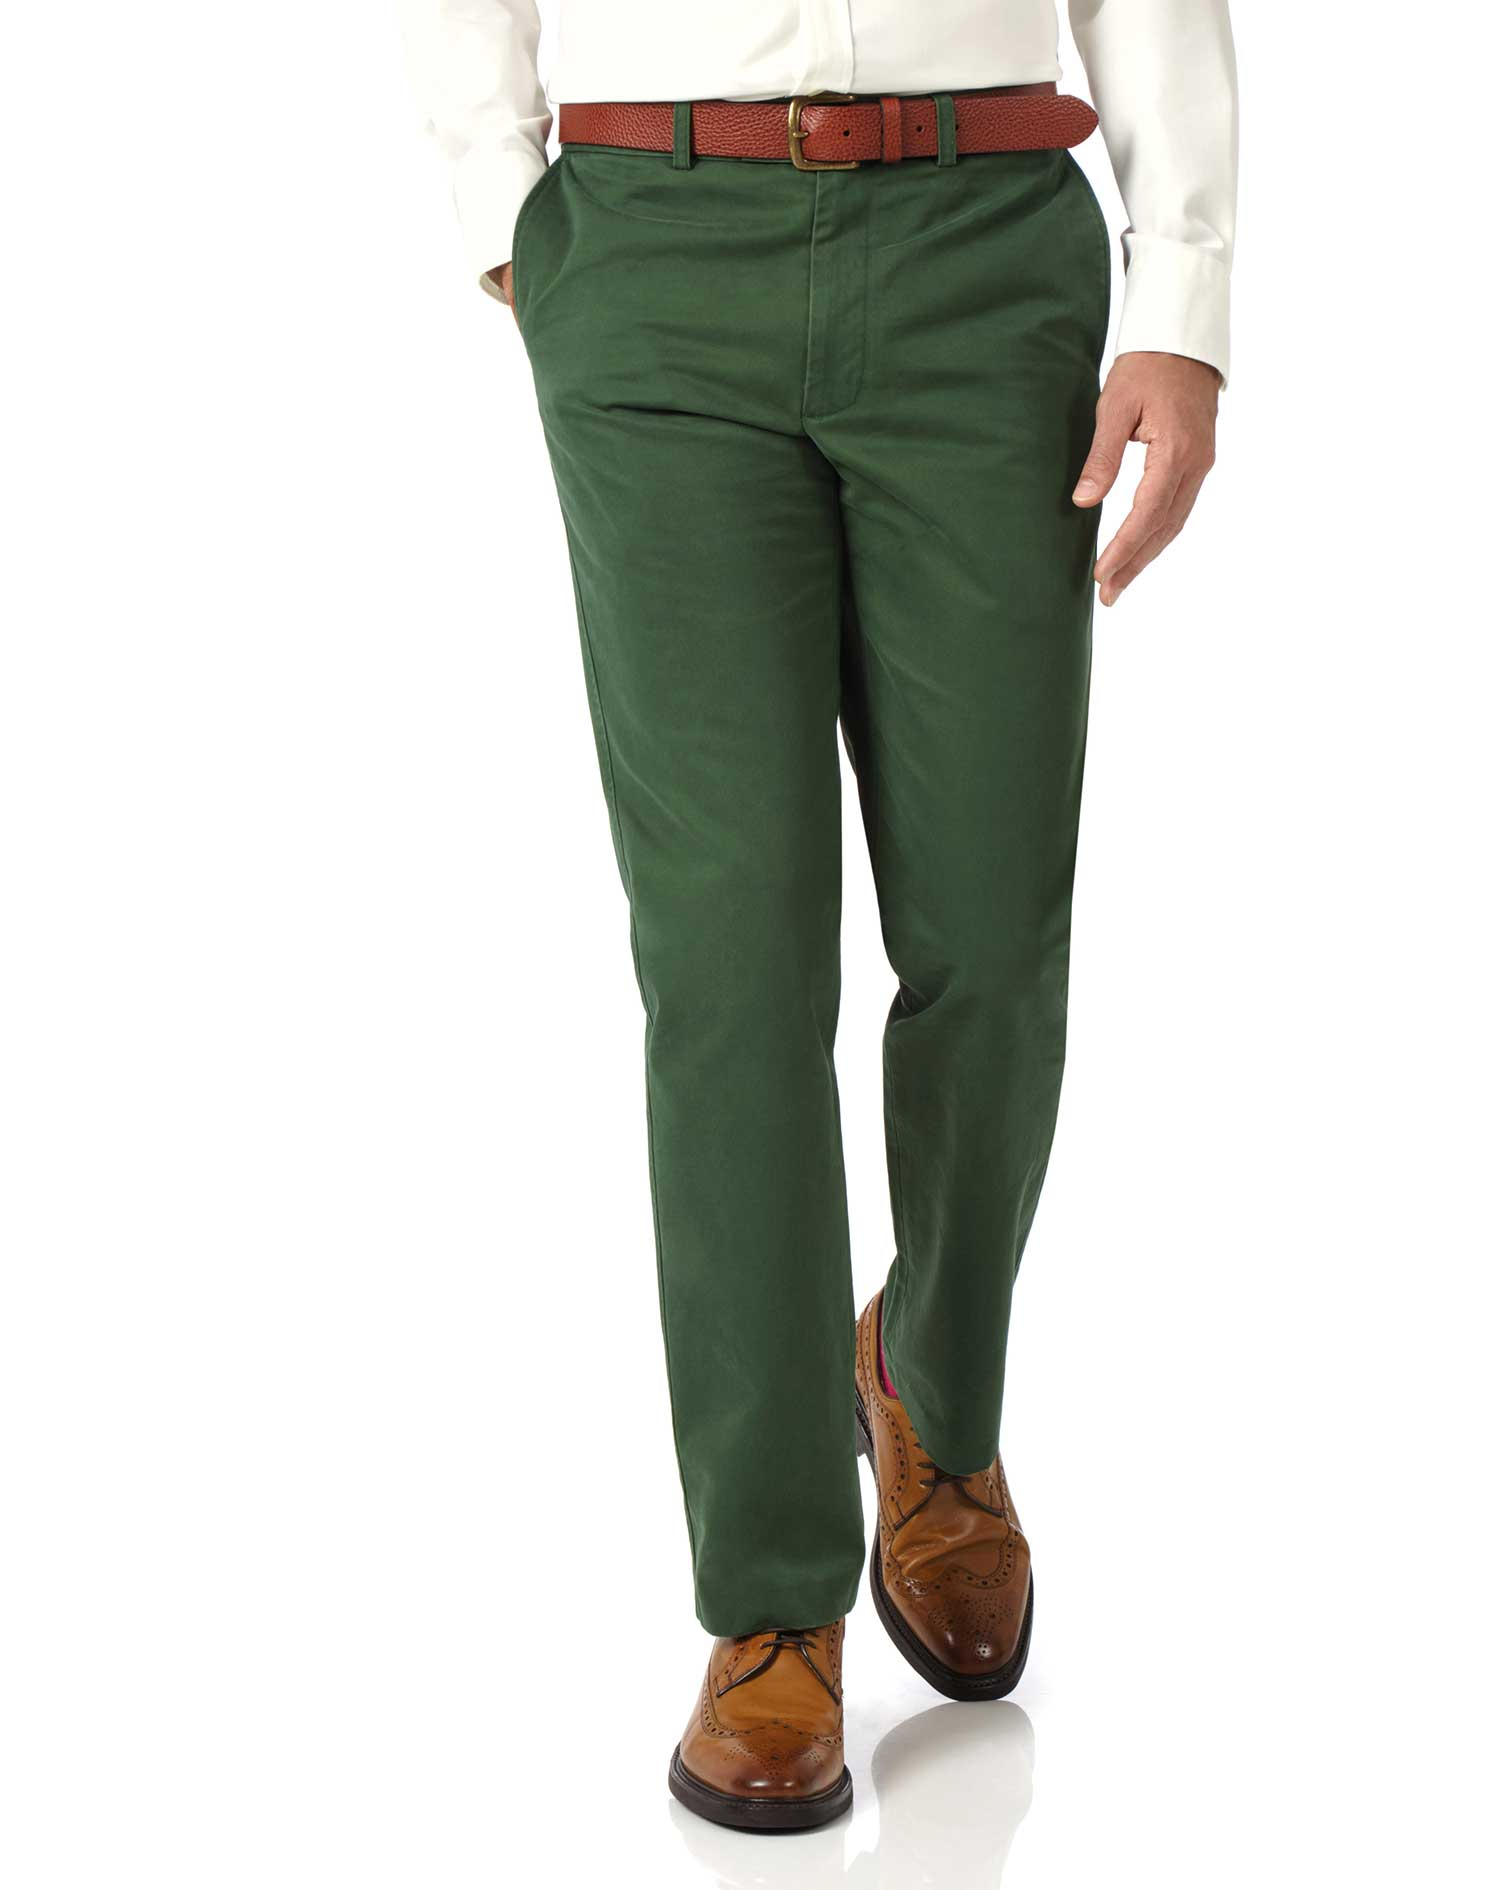 Green Slim Fit Flat Front Washed Cotton Chino Trousers Size W36 L32 by Charles Tyrwhitt